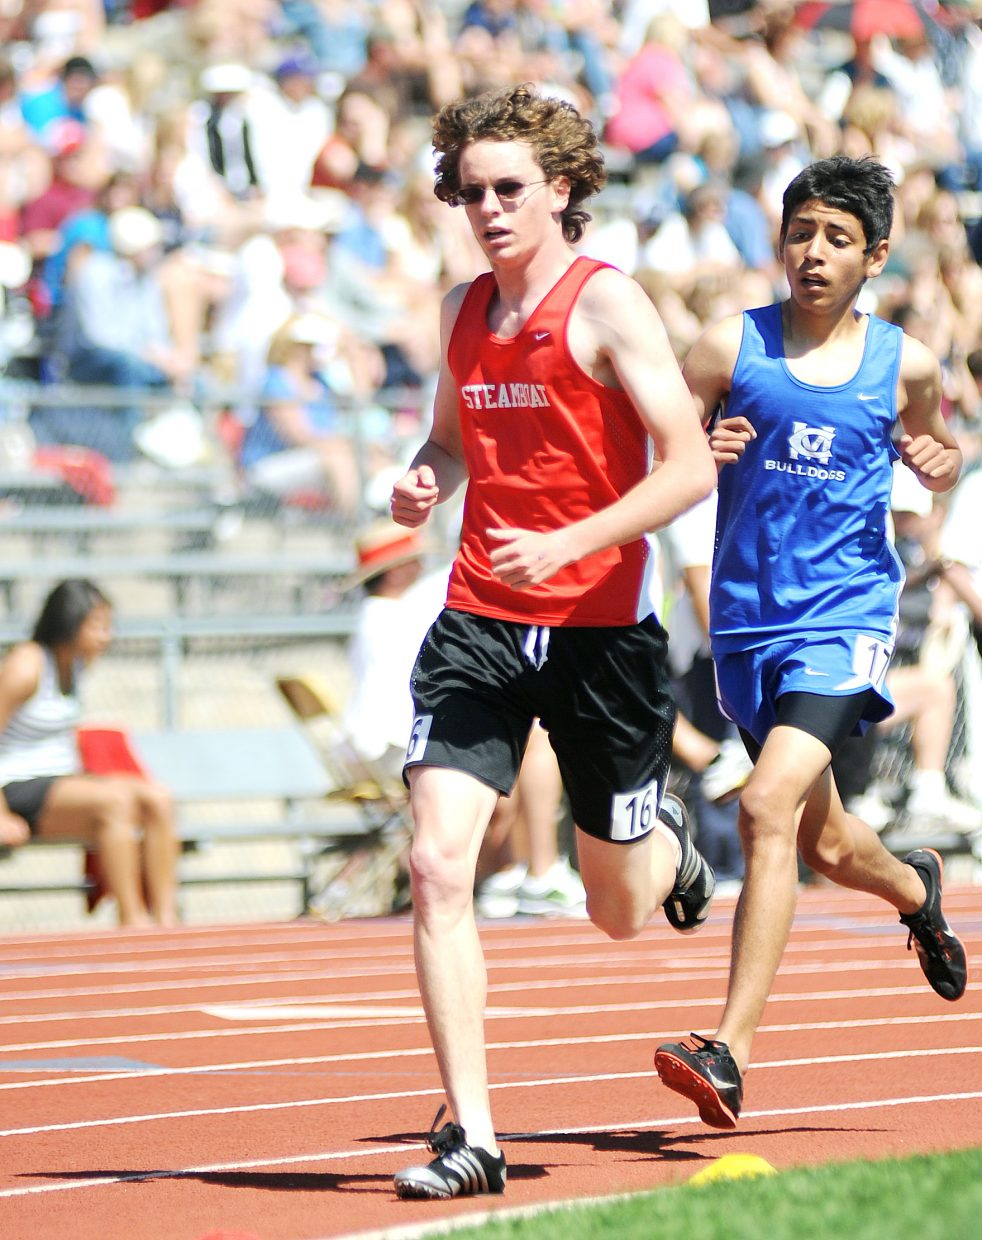 Steamboat's Gus Allen runs in the 3,200-meter run at the state track meet in Lakewood.